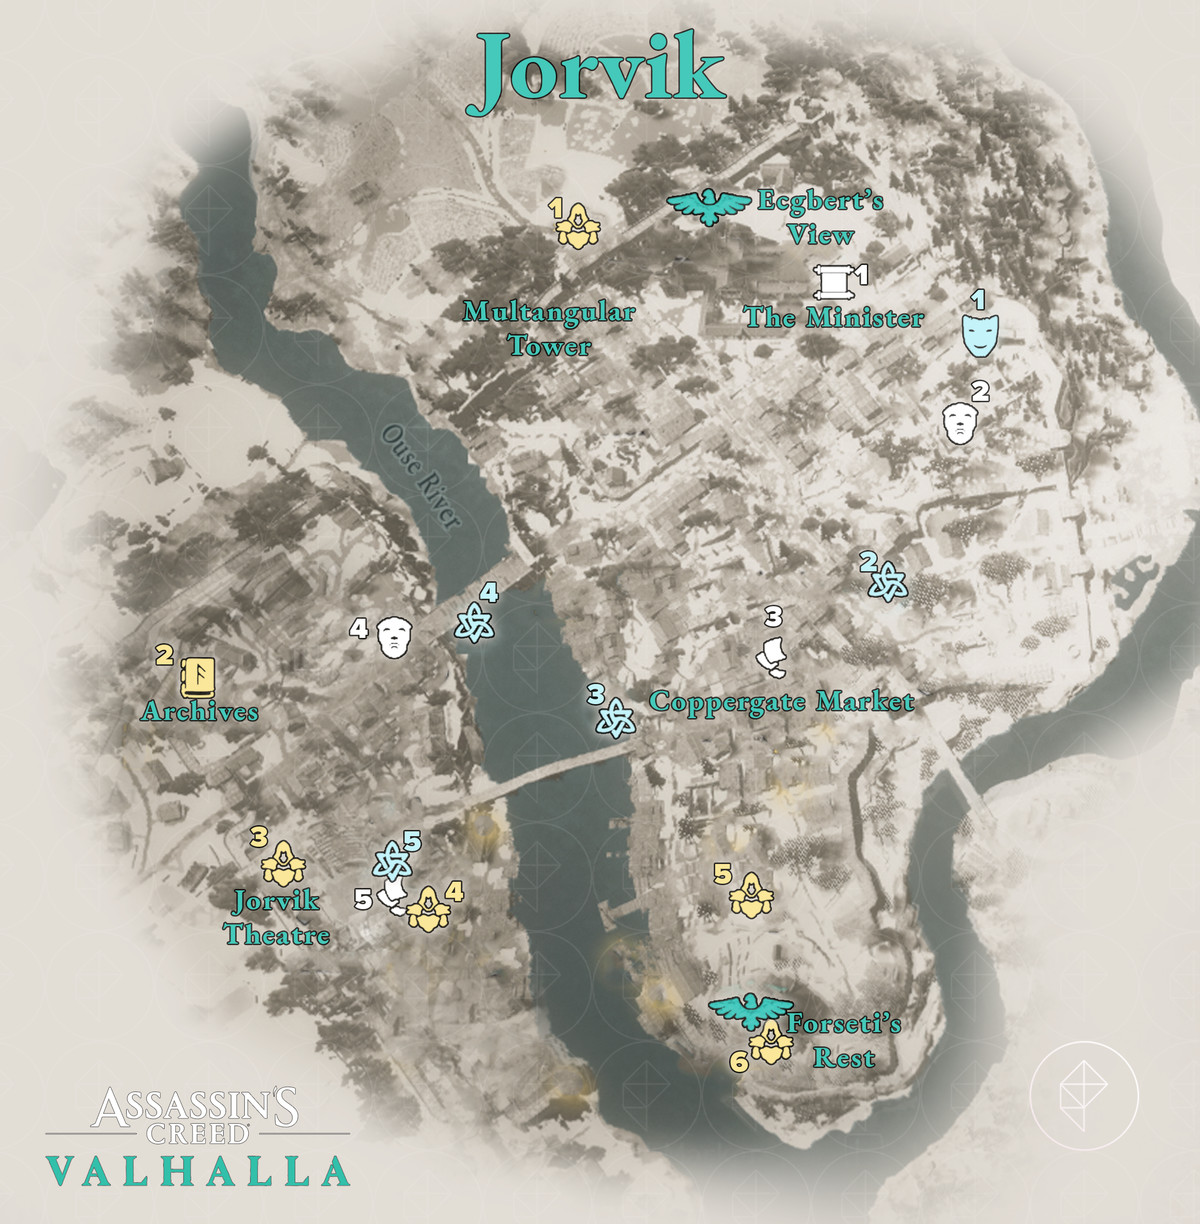 Jorvik Wealth, Mysteries, and Artifacts locations map